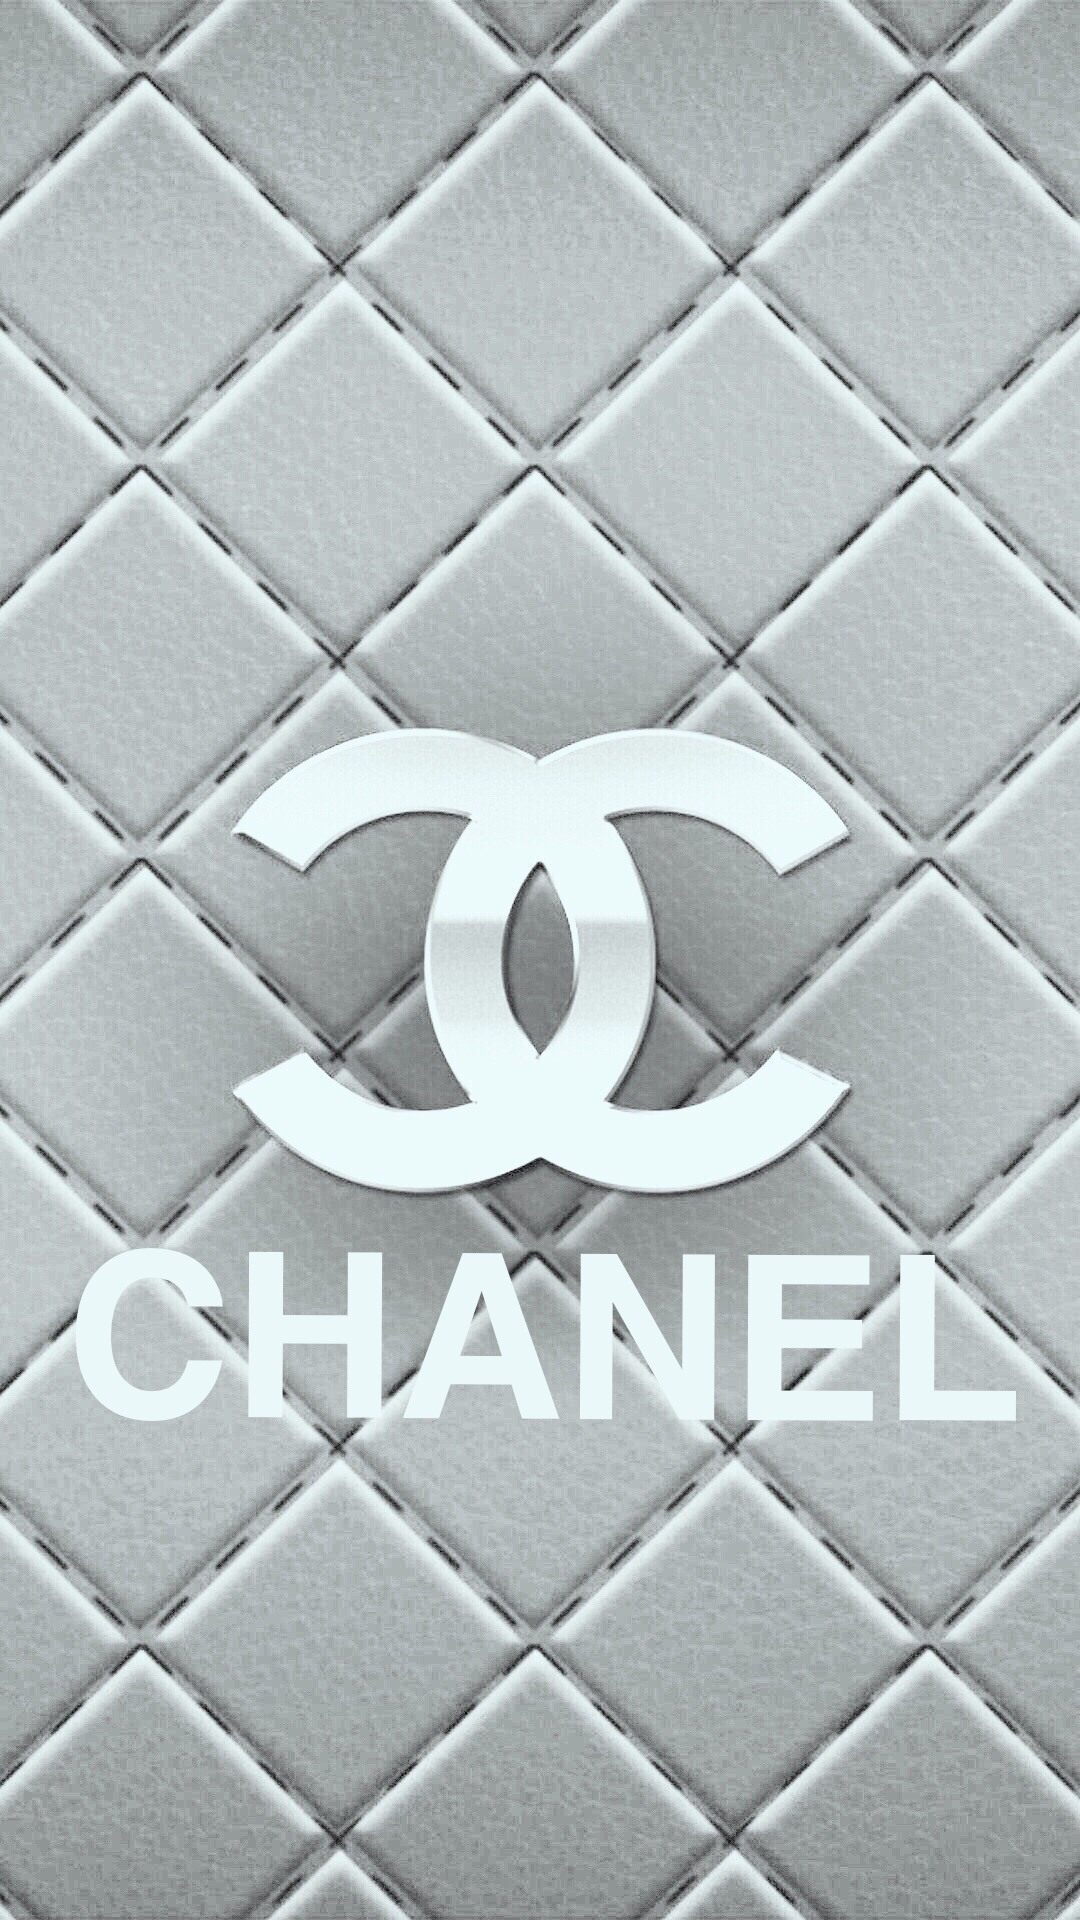 CHANEL-iPhone-plus-white-wallpaper-wp5005868